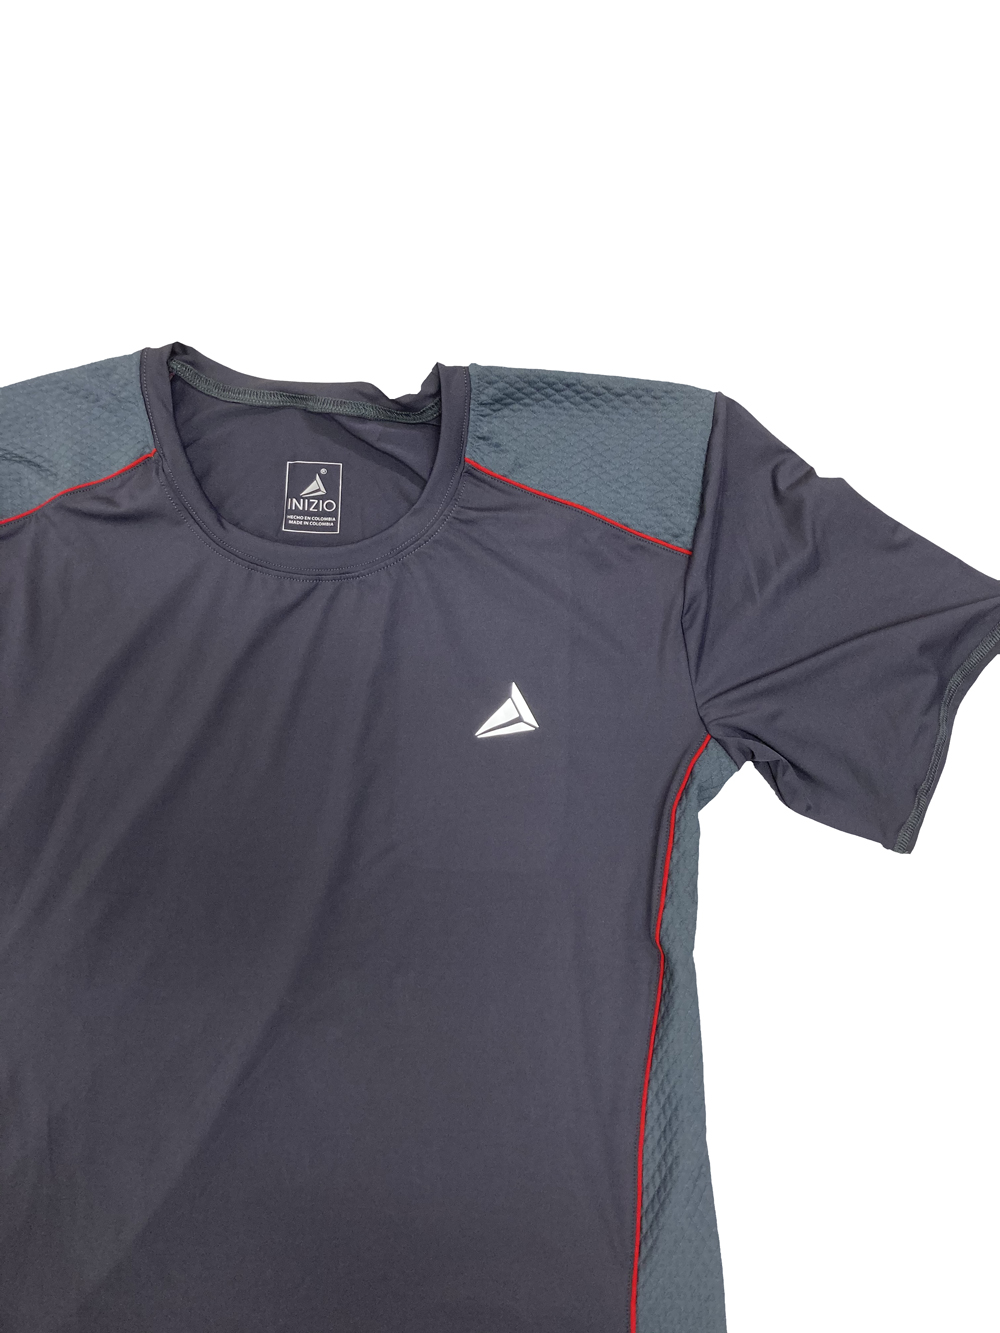 INIZIO(BABALU)POLYESTER SPORTS T-SHIRT GRIS HUMO